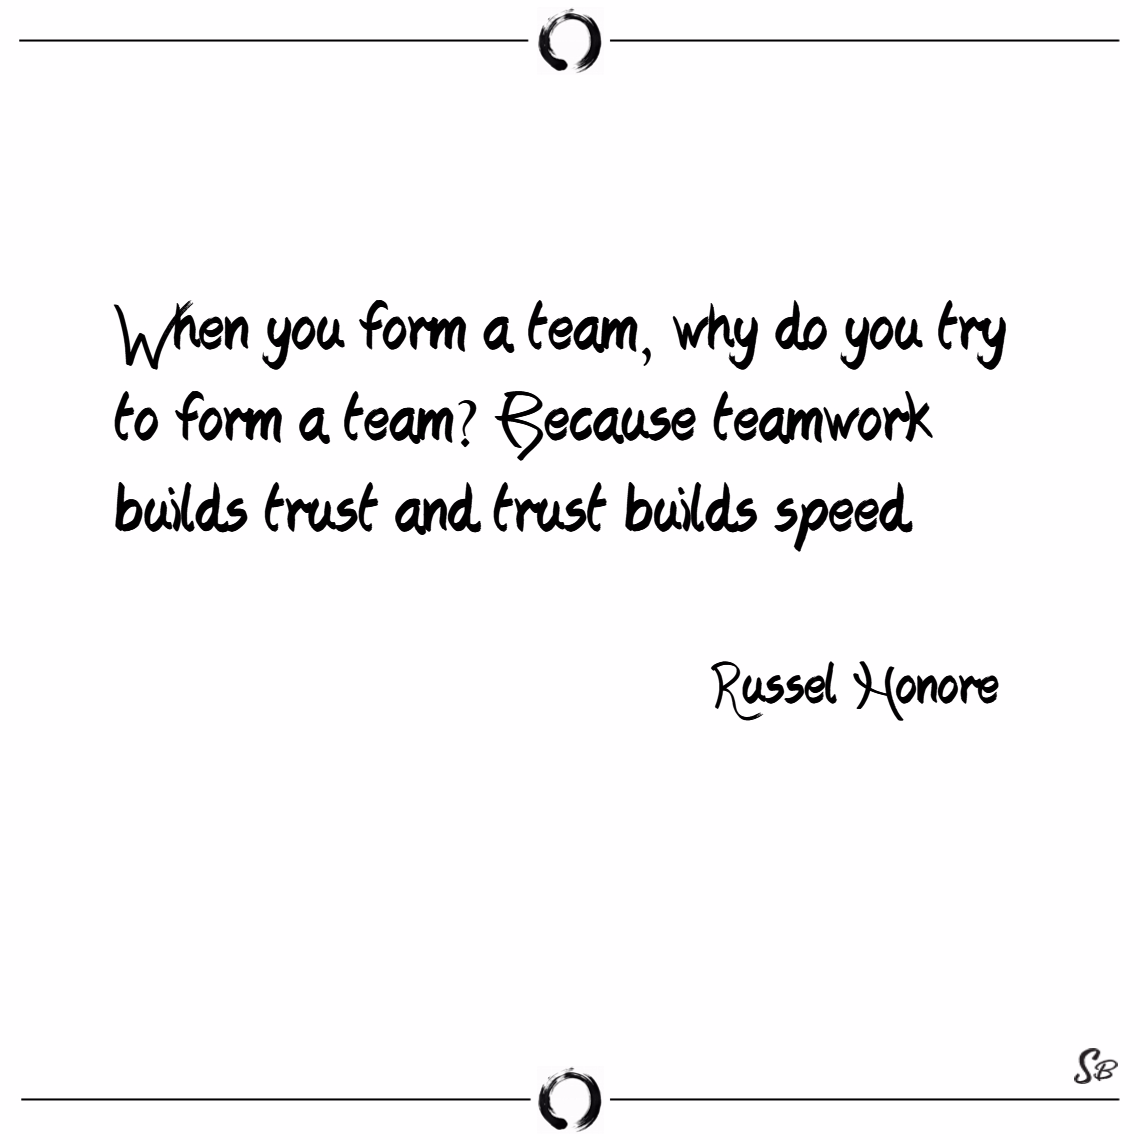 Teamwork Quotes 31 Teamwork Quotes To Motivate Your Group  Spirit Button